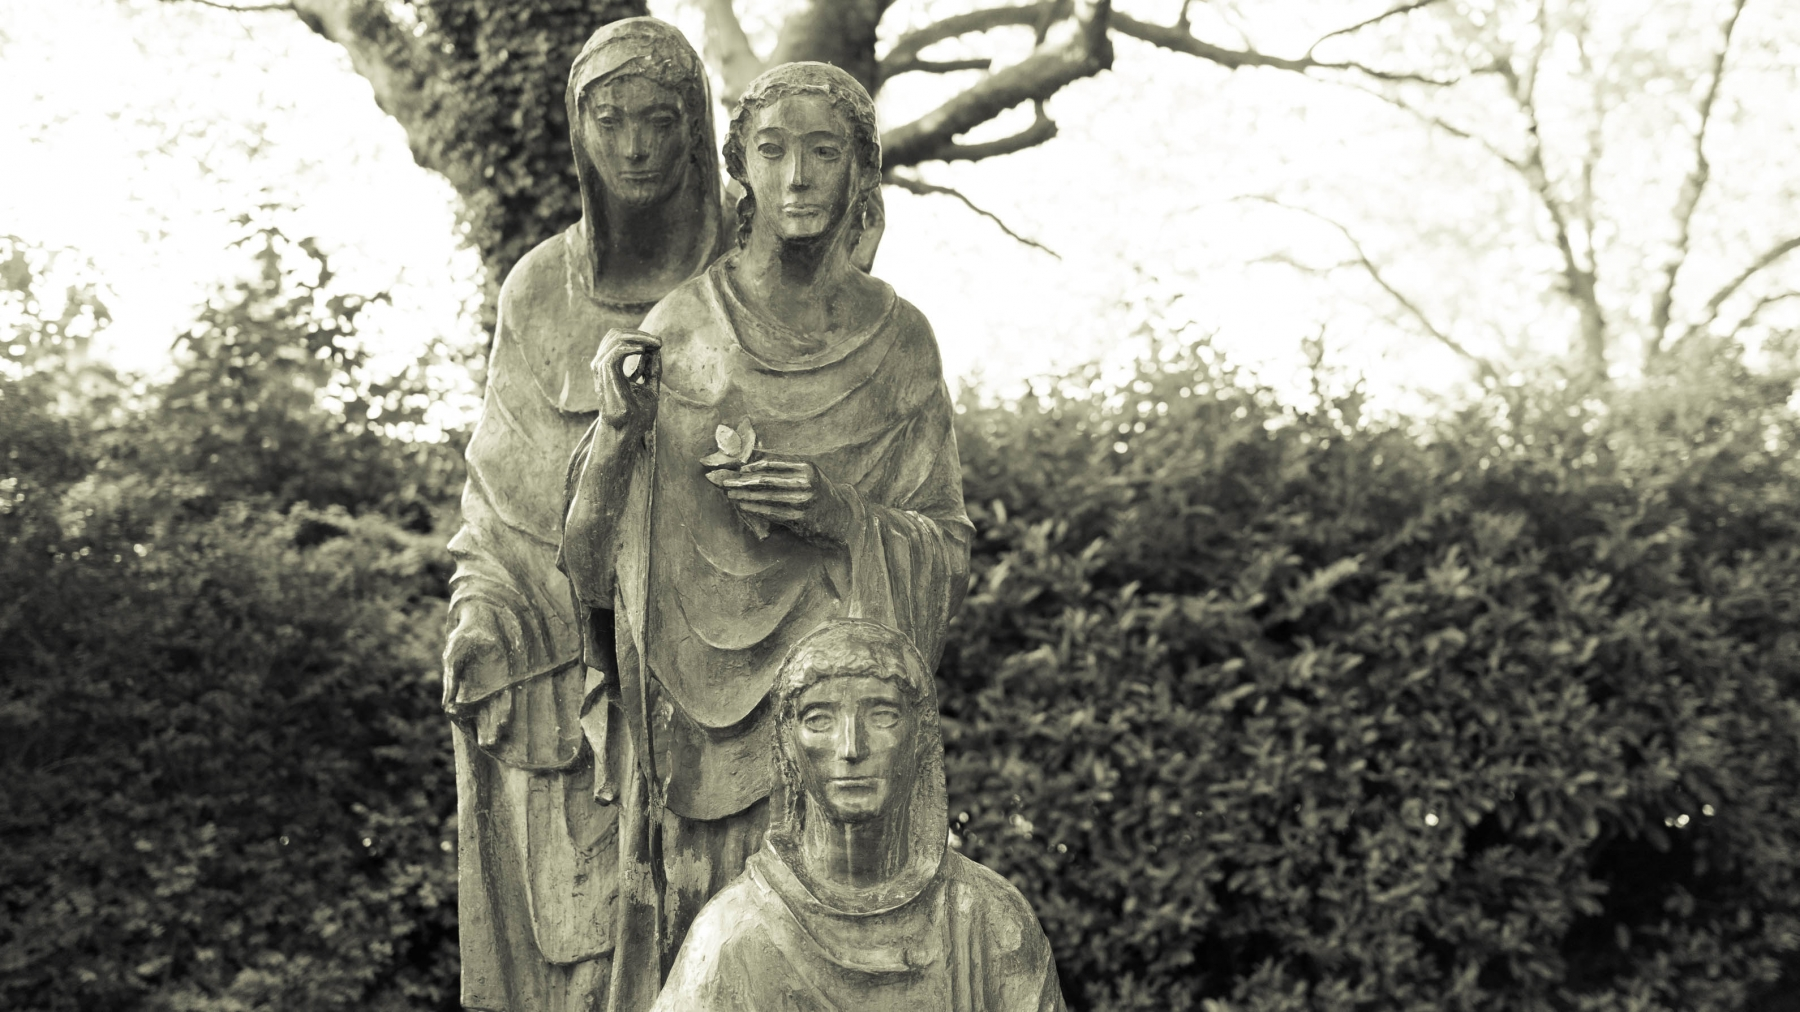 Commissioned in 1956, this statue was sent over by the German Federation to express their gratitude to the Irish for their help and generosity after WW2 had ended. The Irish put forth great efforts to help German refugees after World War II focusing mostly on helping German children.